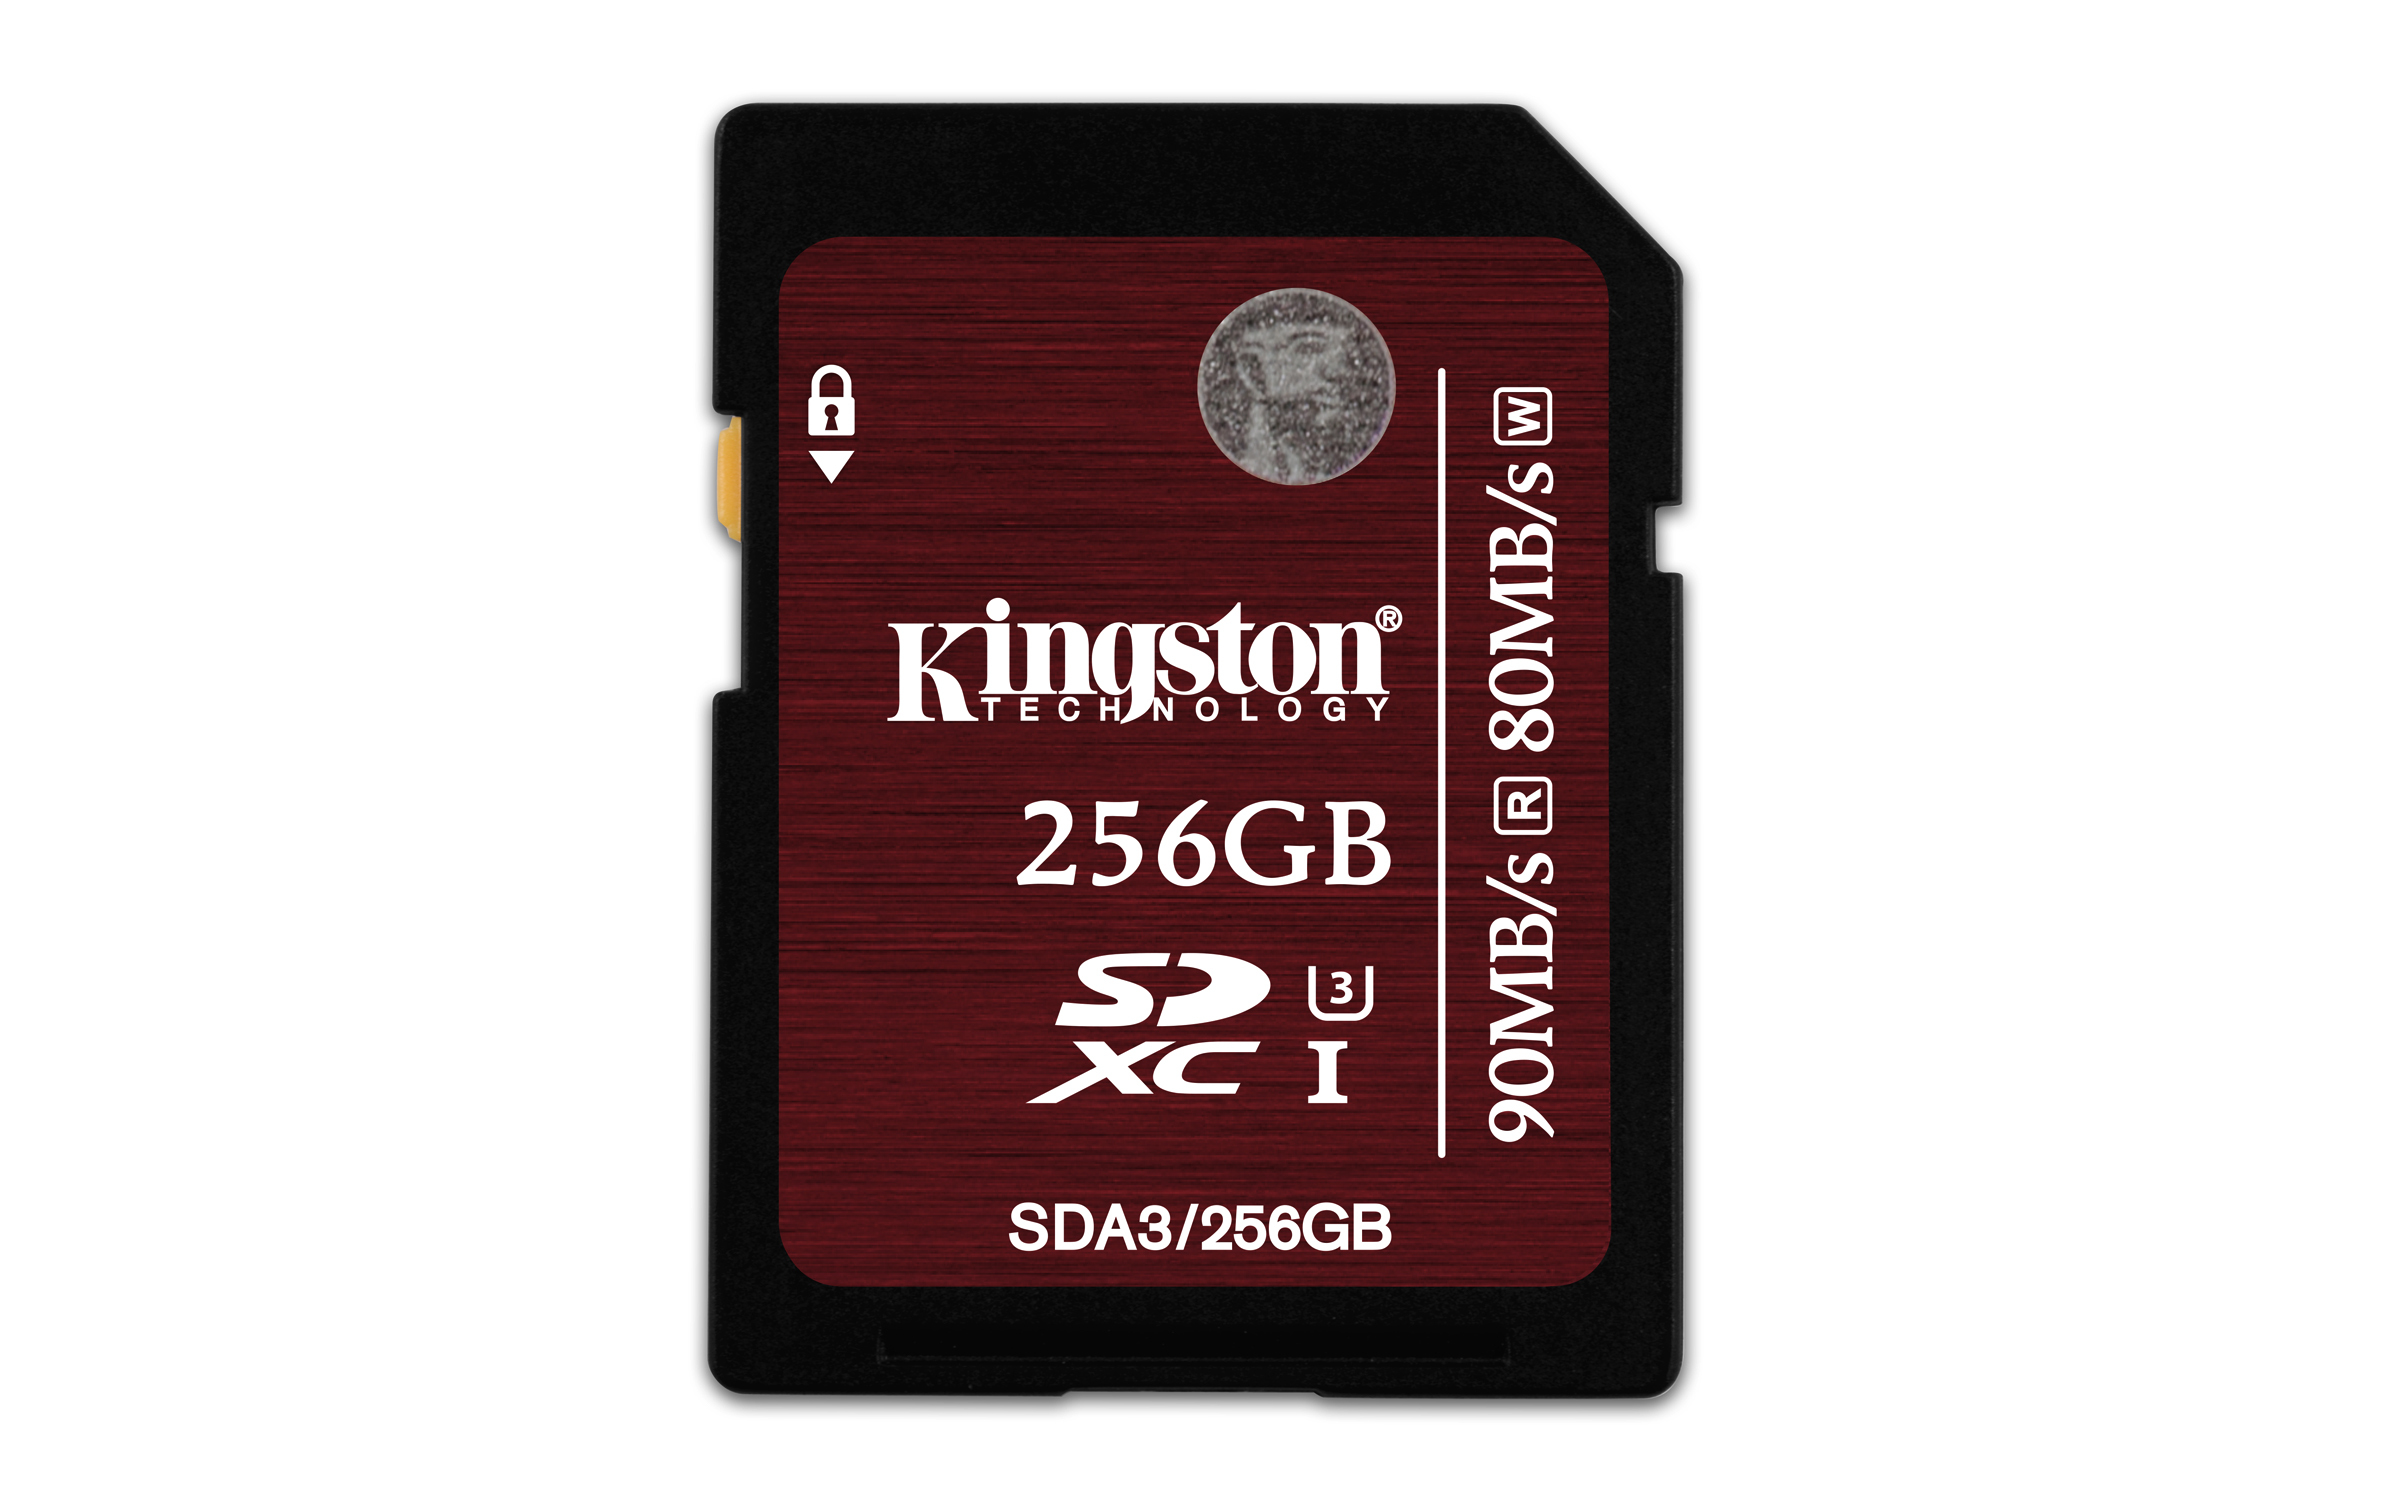 Kingston Technology SDXC UHS-I U3 (SDA3) 256GB 256GB SDXC UHS Class 3 memory card